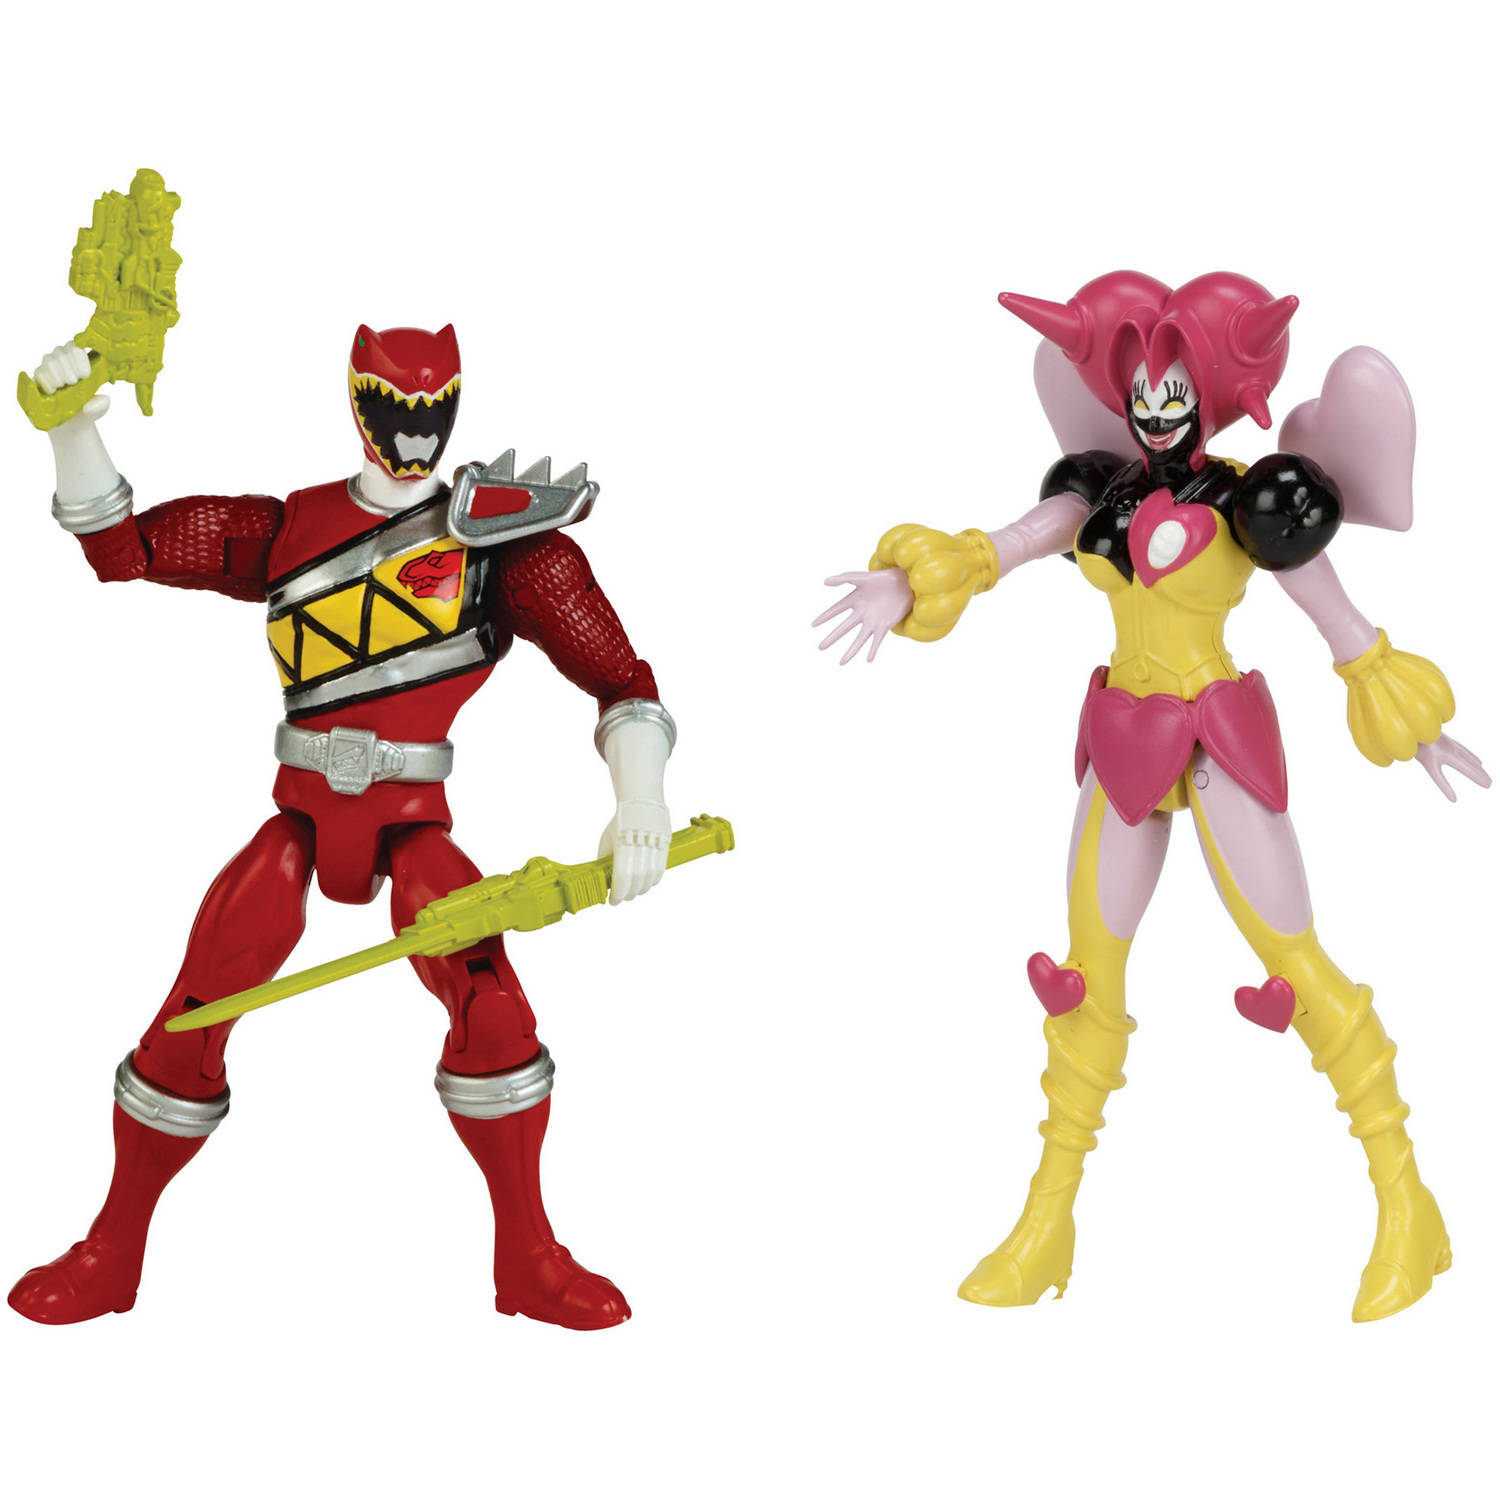 Bandai America Power Rangers 5 Inch Action Figure Good vs Evil, DSC Red vs DSC Poisondra by Bandai America